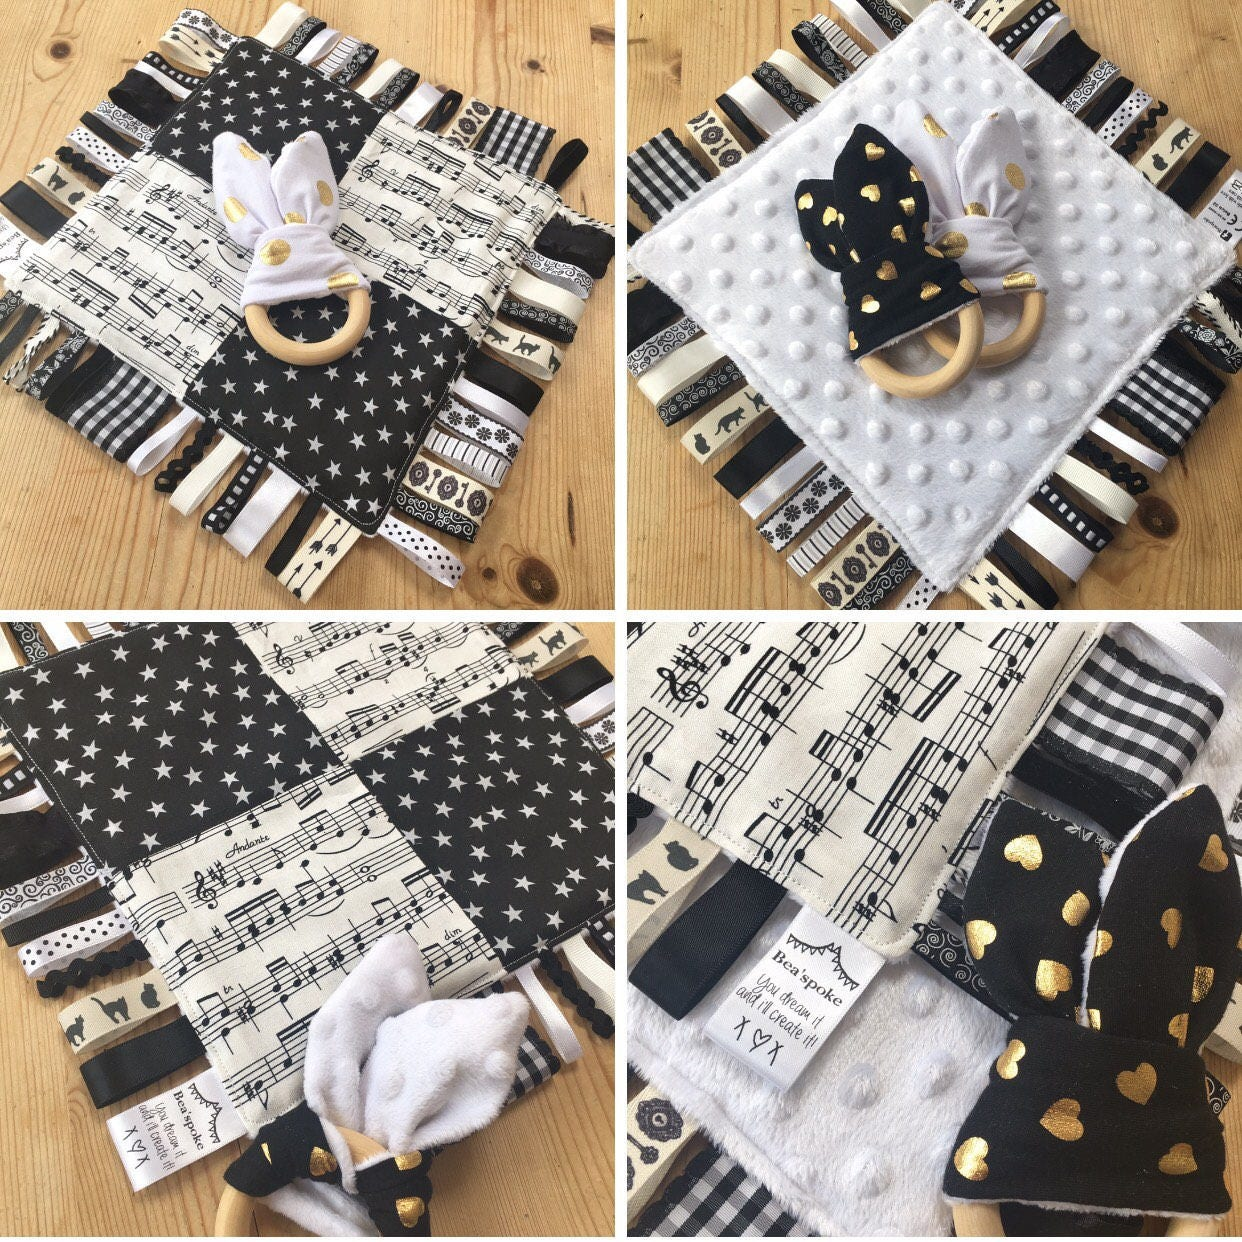 Baby Monochrome Music Stars Ribbon Tag Blanket Wooden Teether Teething Ring Taggy Taggie Comforter Shower Girl Boy Alternative Black White